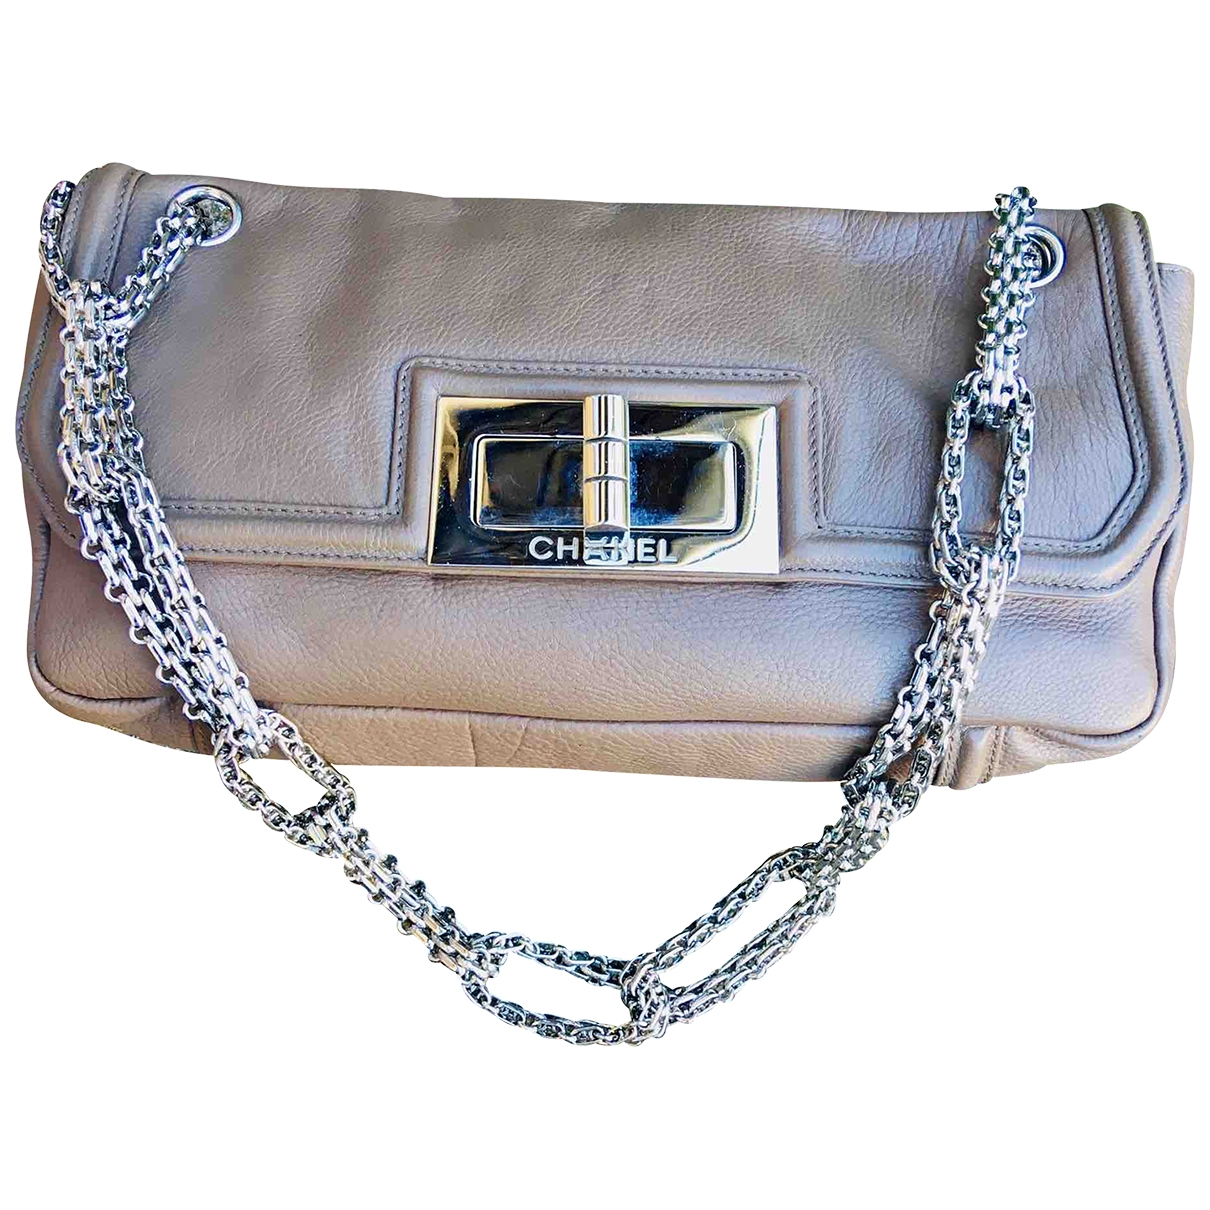 Chanel 2.55 Khaki Leather handbag for Women \N